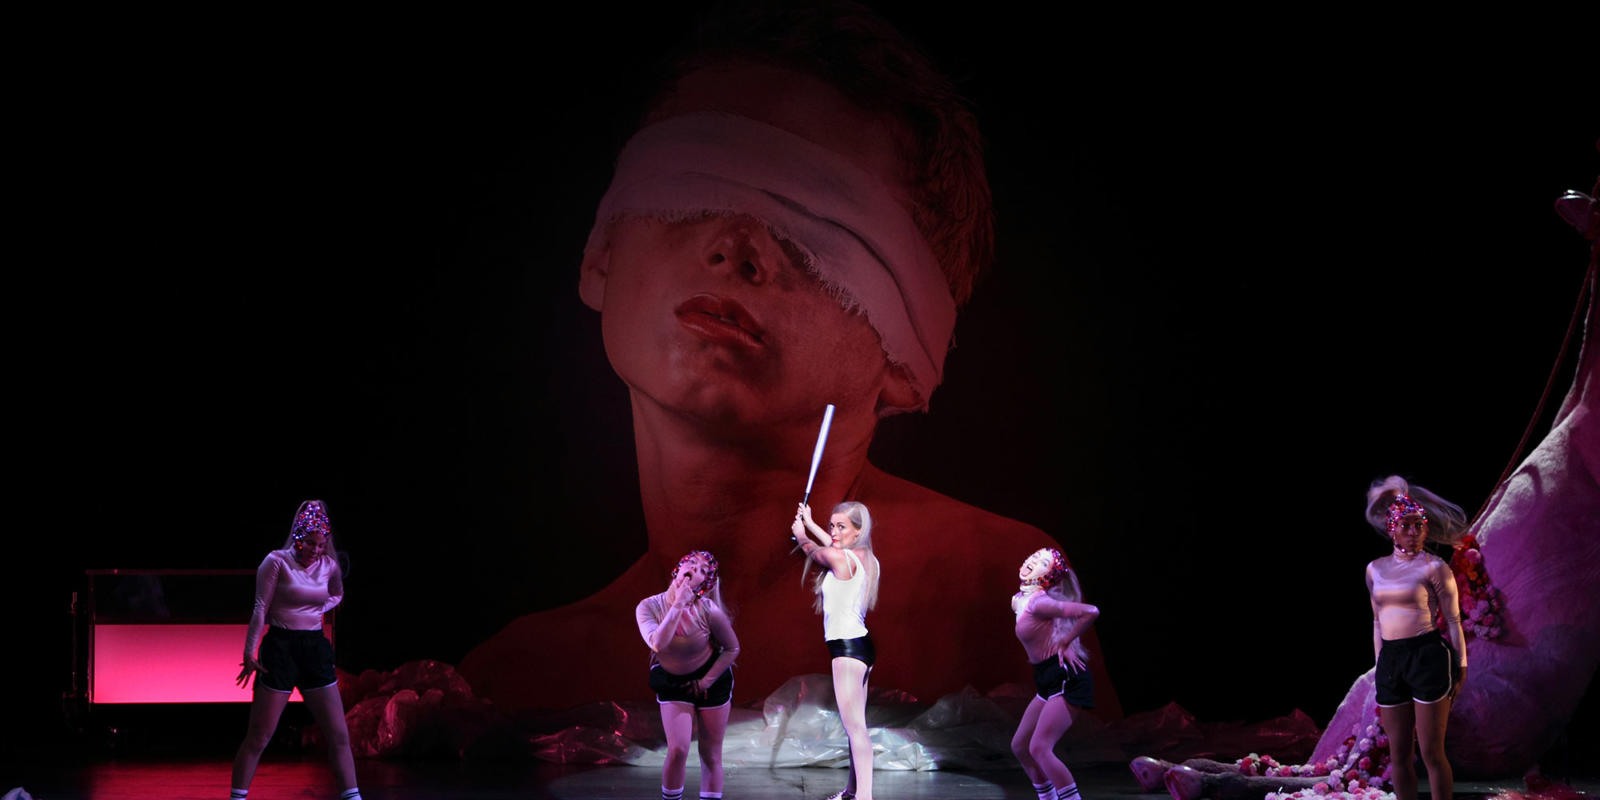 ENO Salome: Allison Cook and dancers (c) Catherine Ashmore